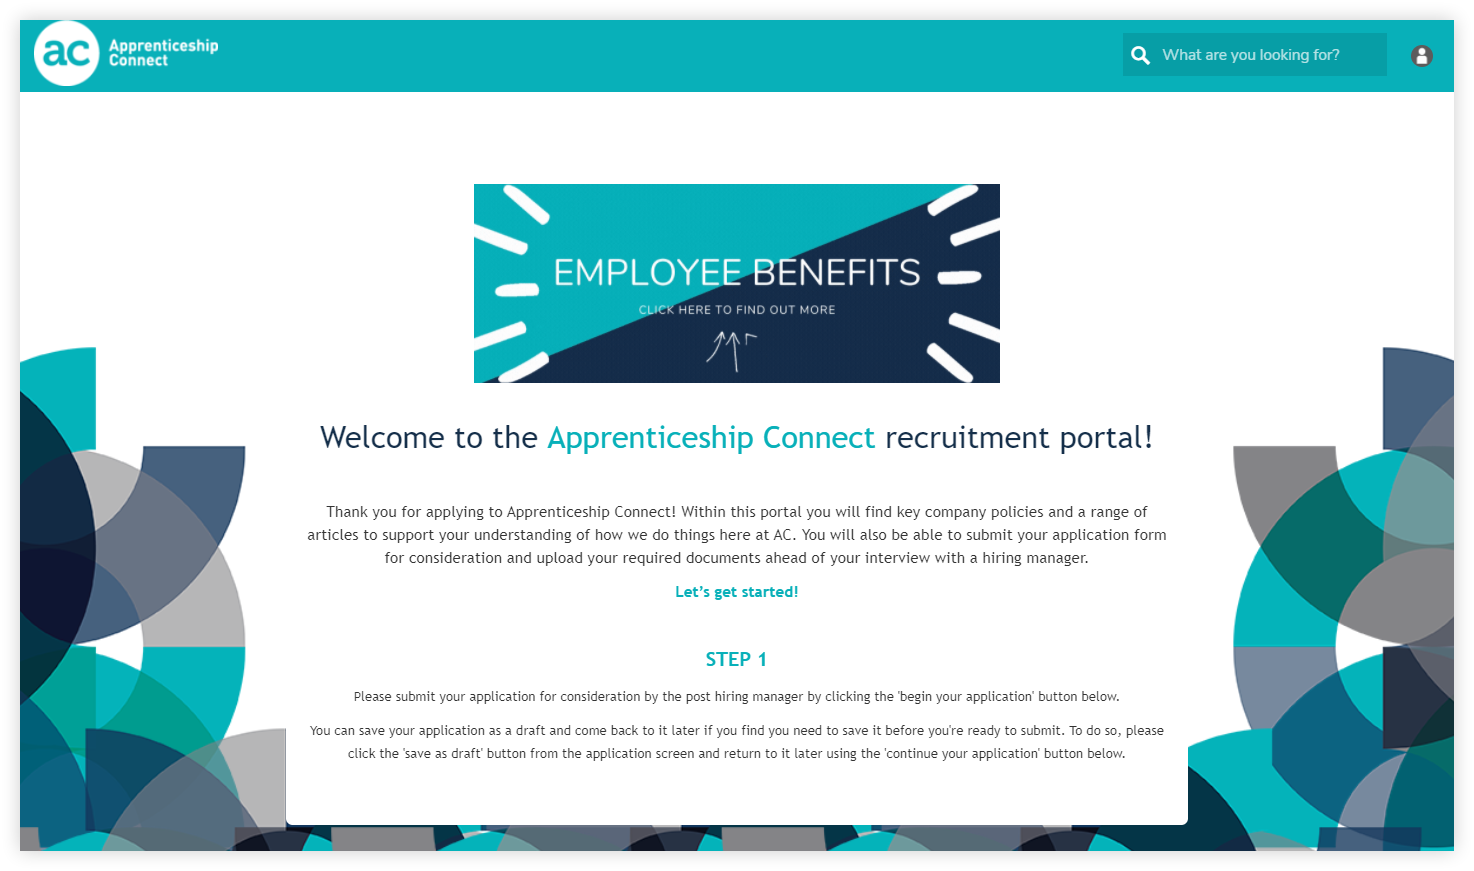 apprenticeship-connect-recruitment-portal-claromentis-intranet